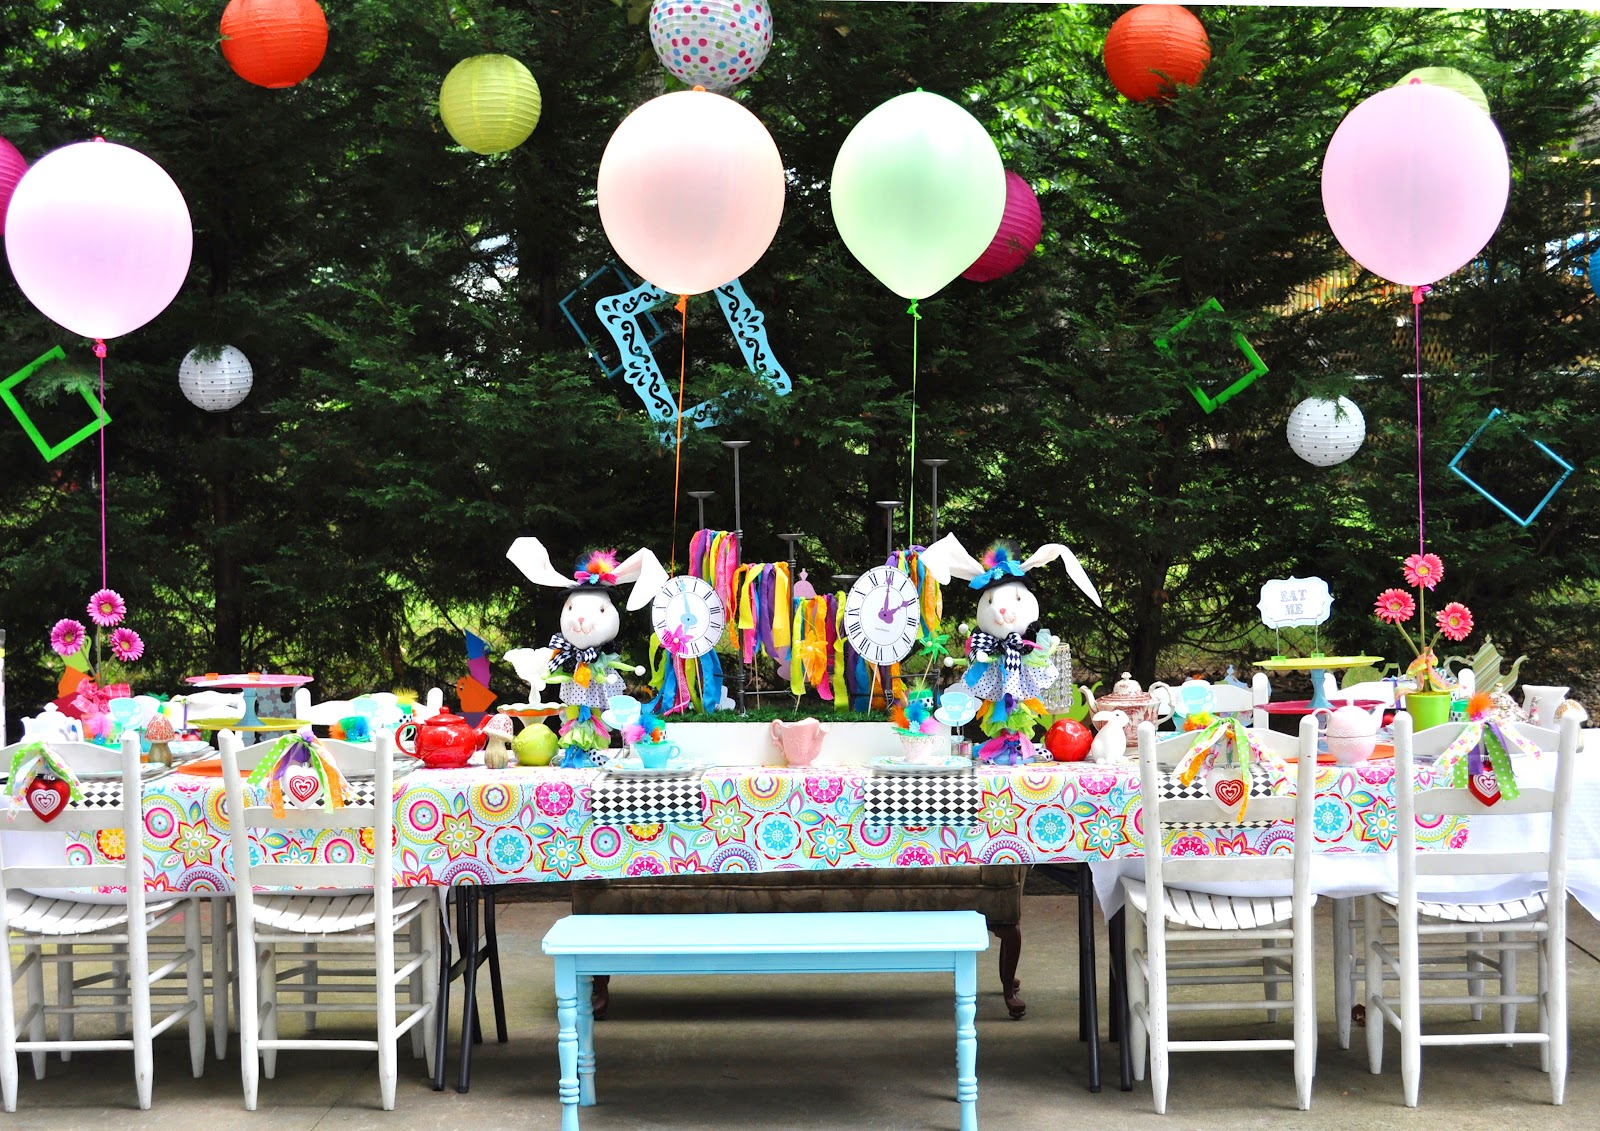 Meghily 39 s alice in wonderland party - Alice in wonderland tea party decorations ...